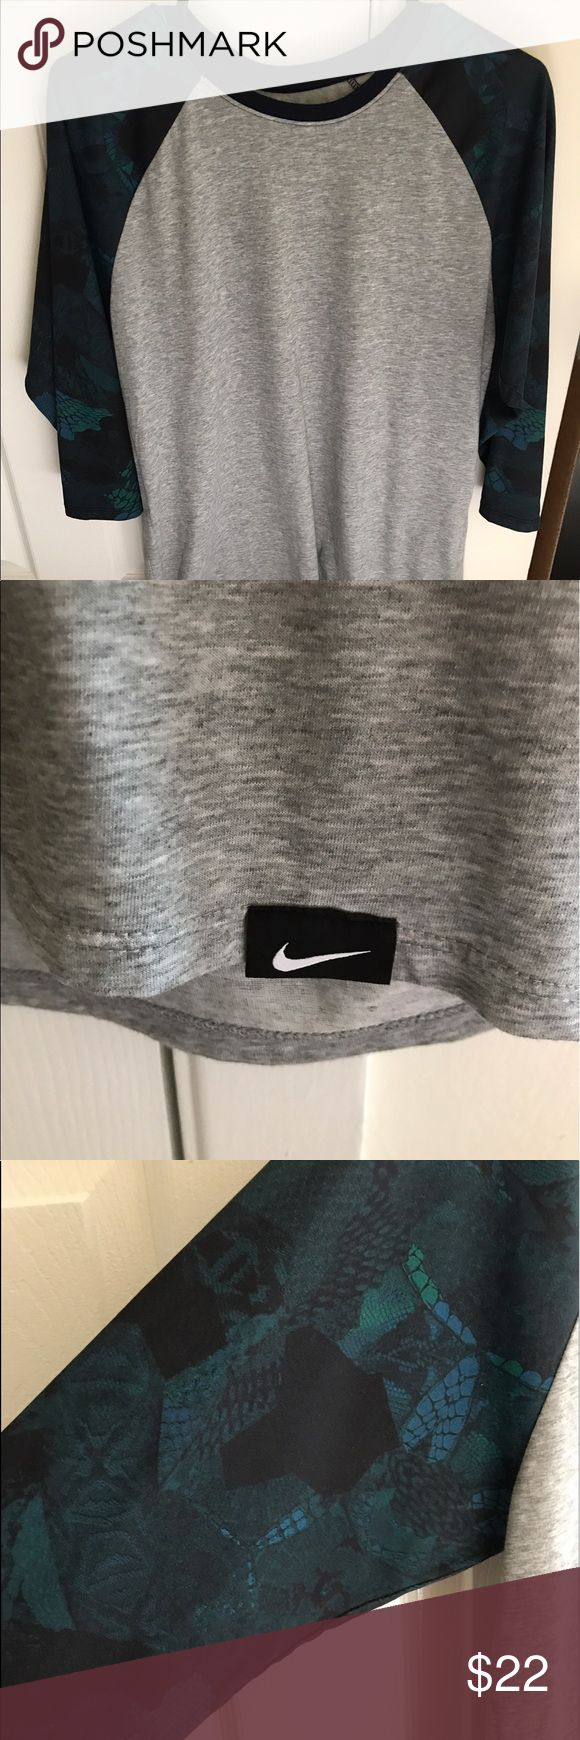 Men's Nike & Kobe 3/4 Sleeve Used, but great condition!! MENS! 3/4 sleeves! Gray with patterned sleeves in blue/green/navy/black! Kobe's symbol on the back! No trades!! Nike Shirts